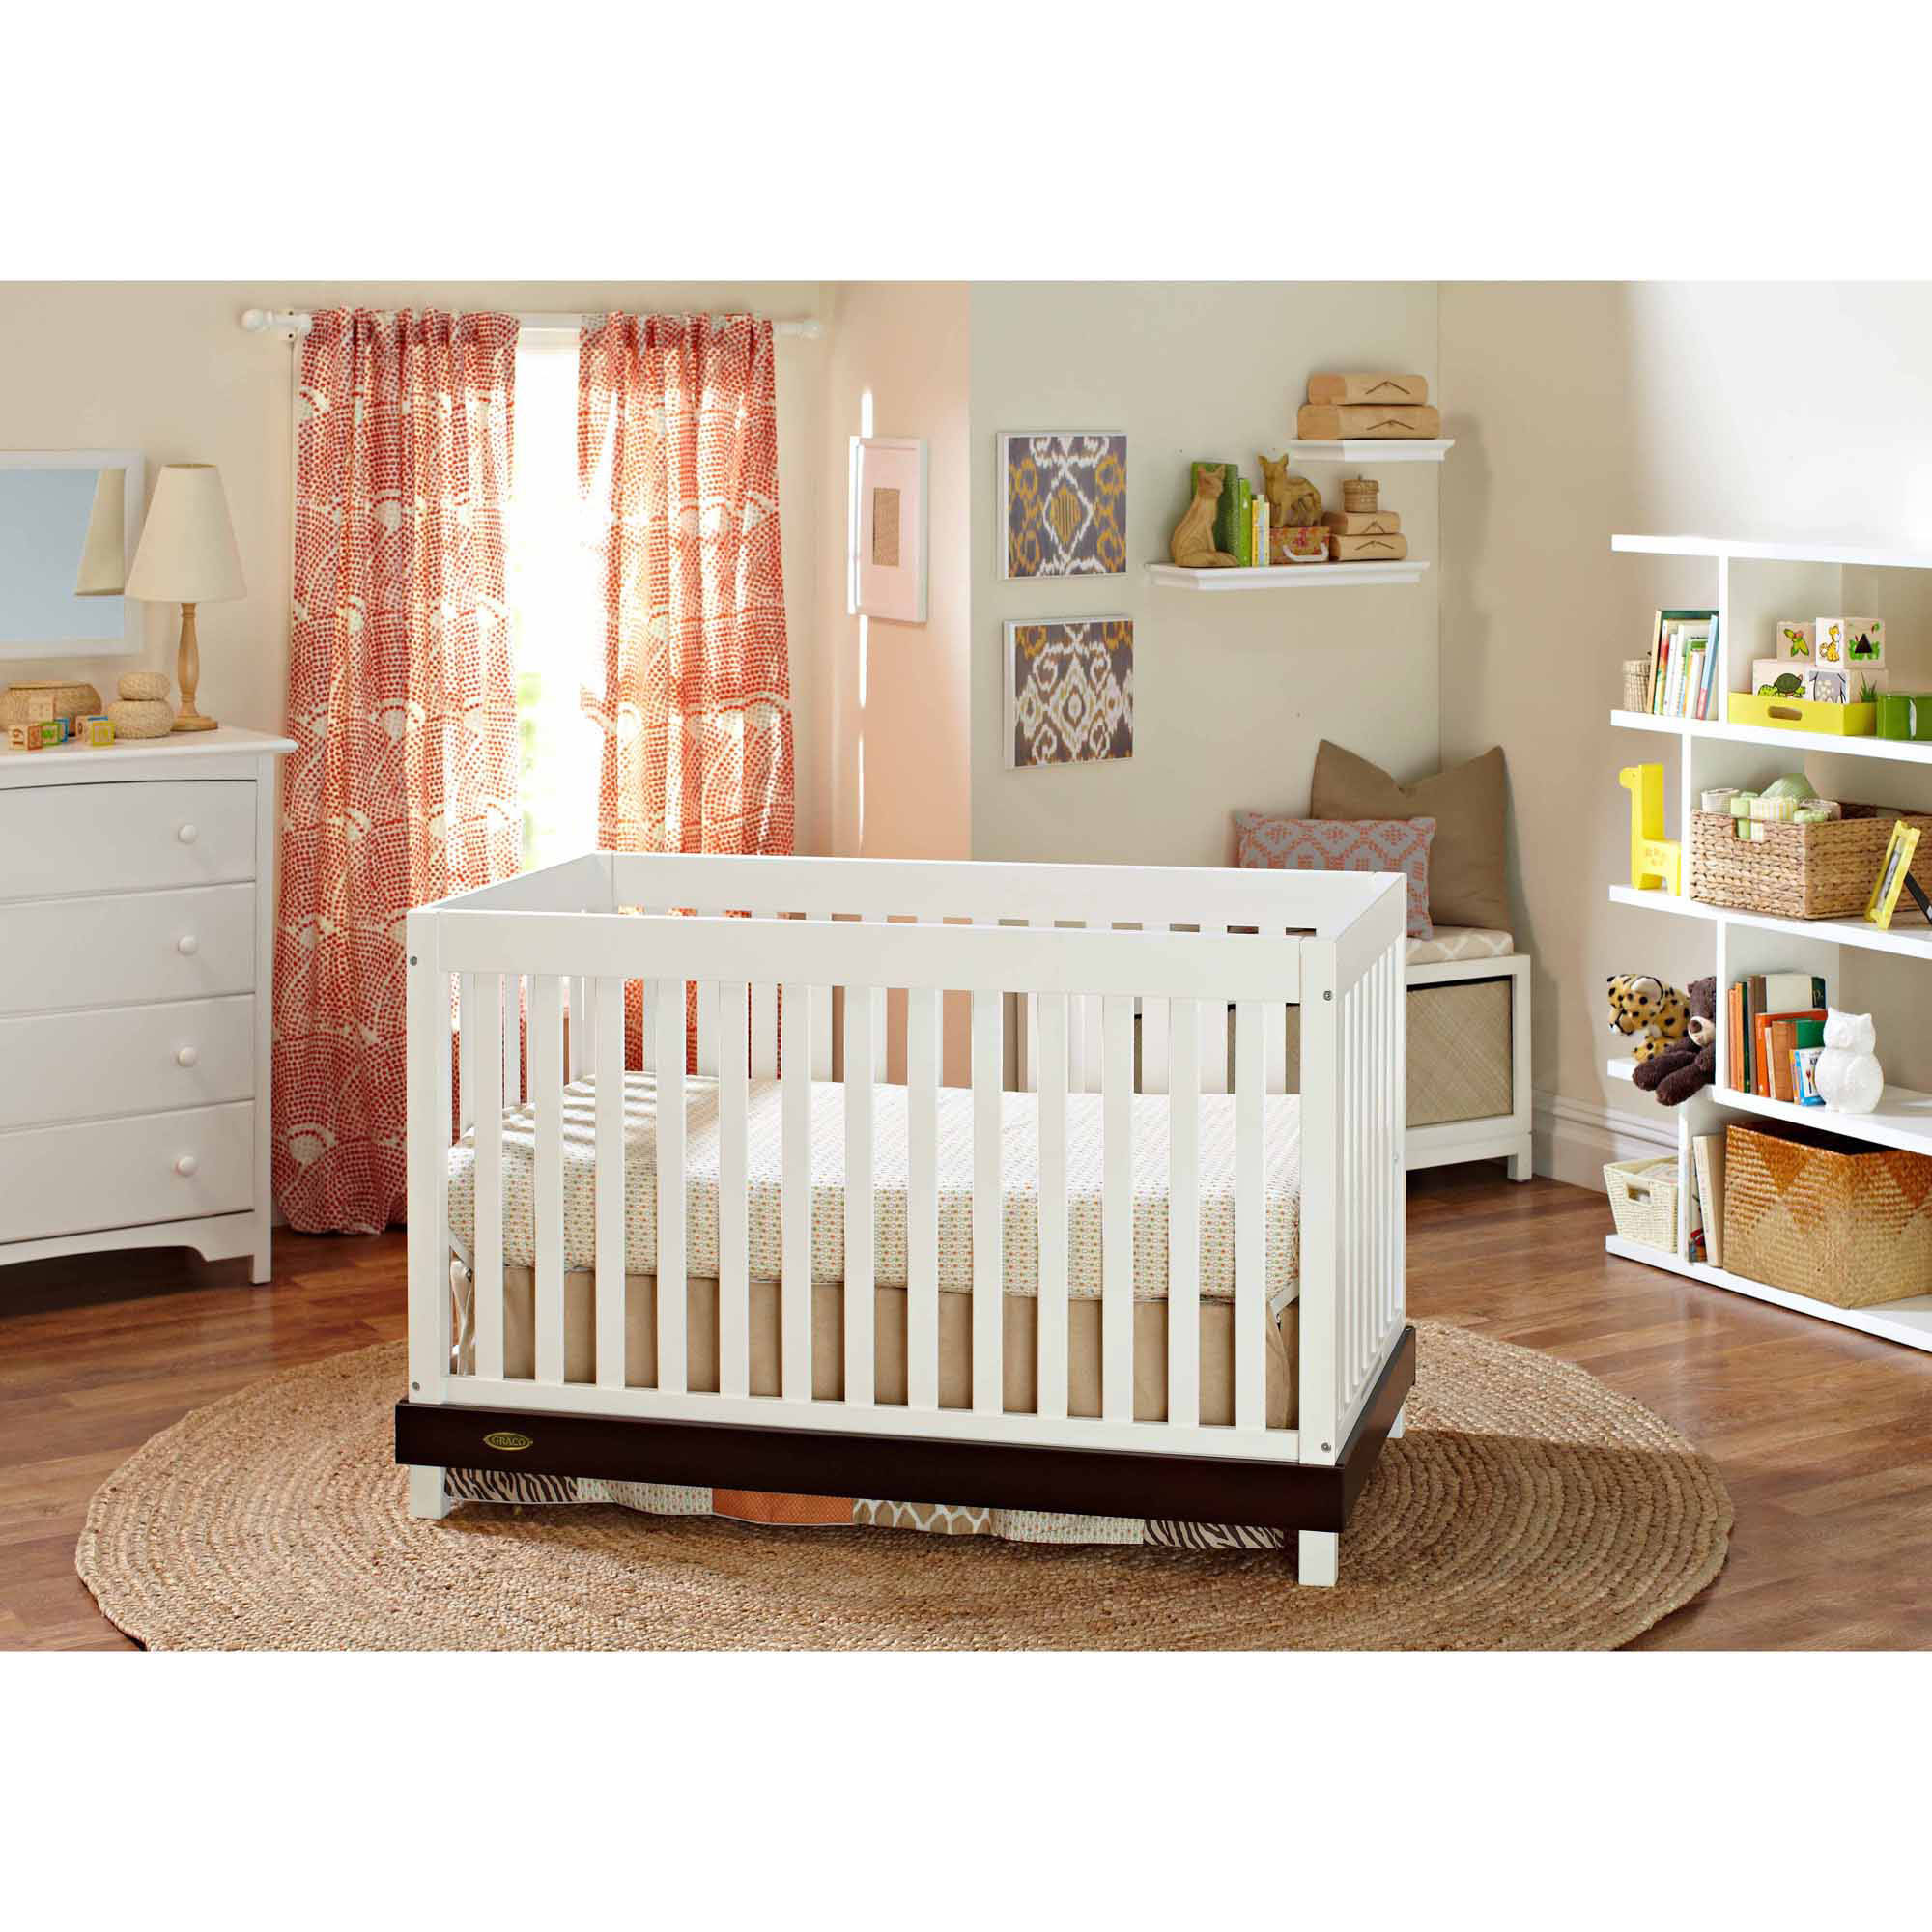 Graco Maddox 4-in-1 Convertible Crib, Multiple Colors